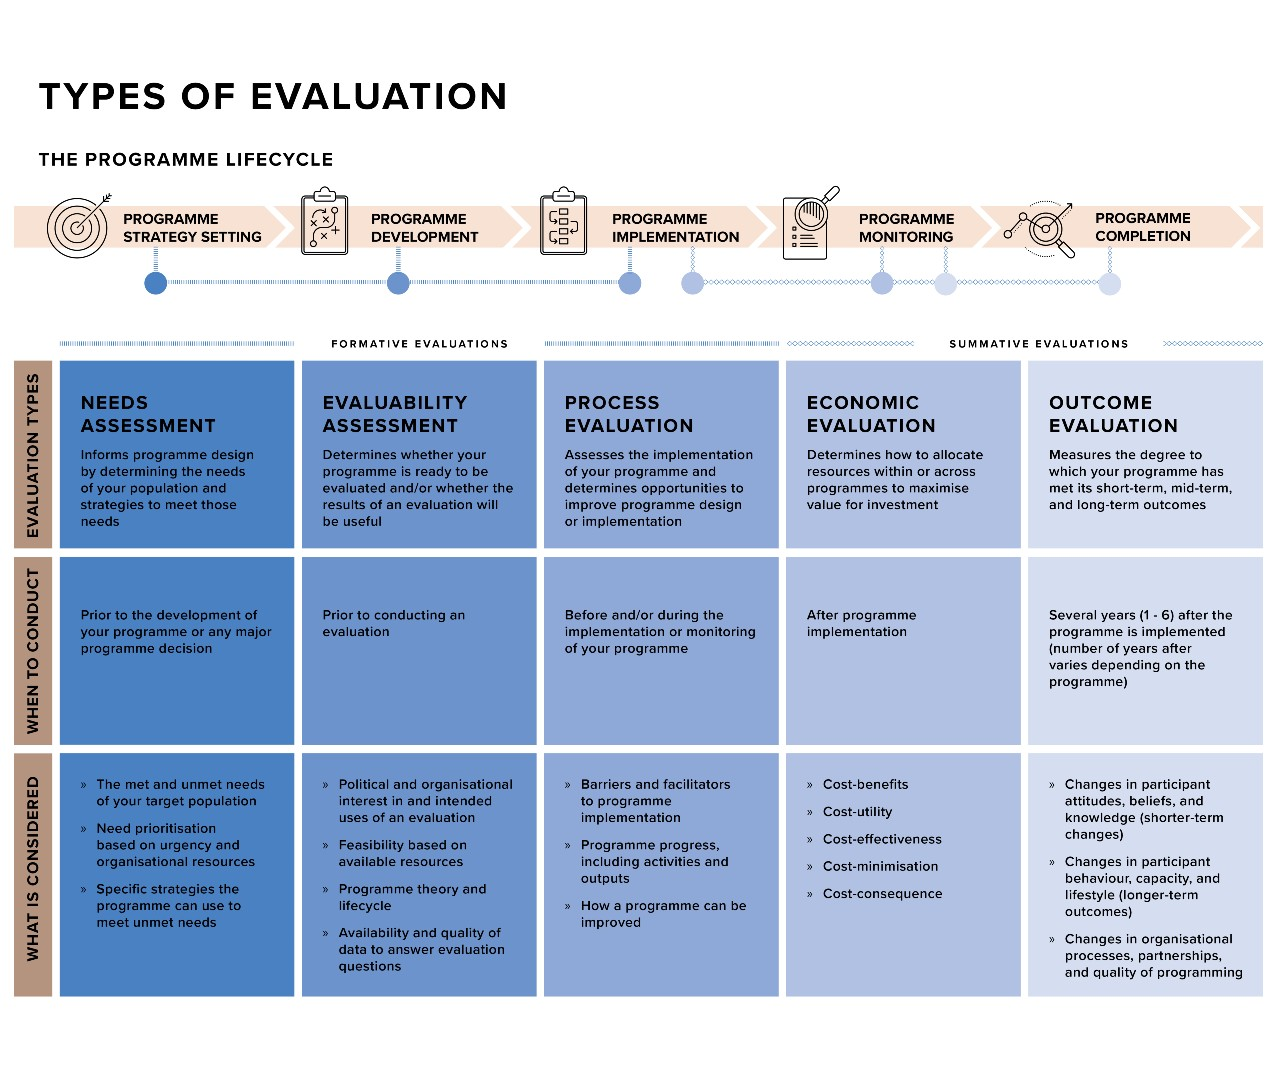 Types of evaluation chart